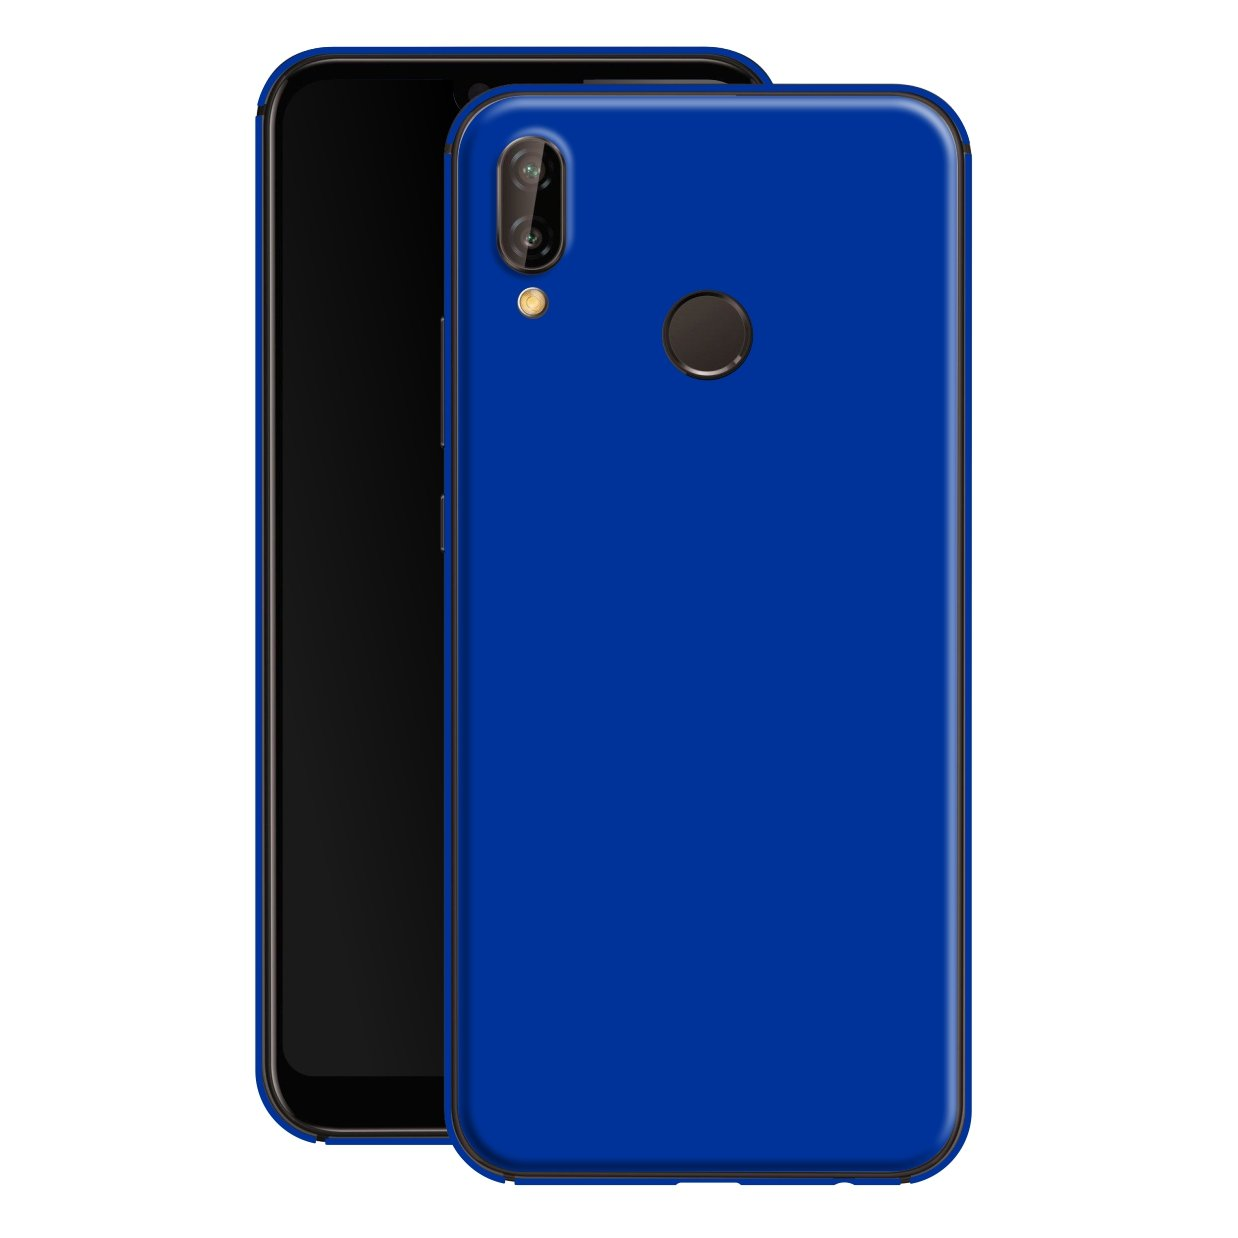 Huawei P20 LITE RoyalBlue Glossy Skin, Decal, Wrap, Protector, Cover by EasySkinz | EasySkinz.com